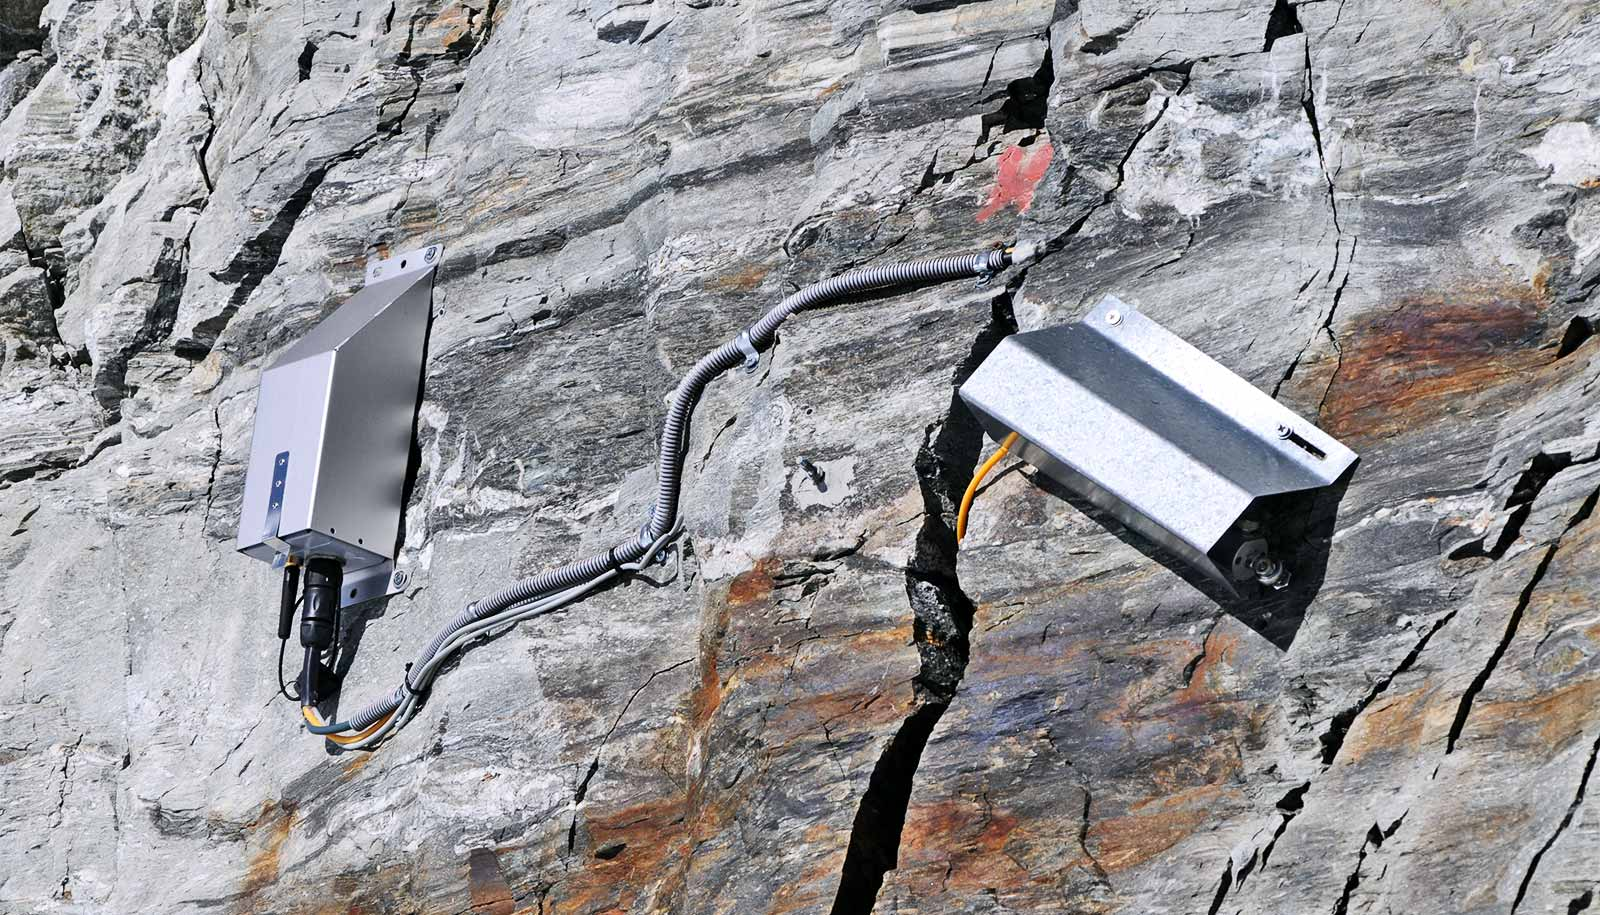 Two metal boxes attached to the rock have wires running into a crack